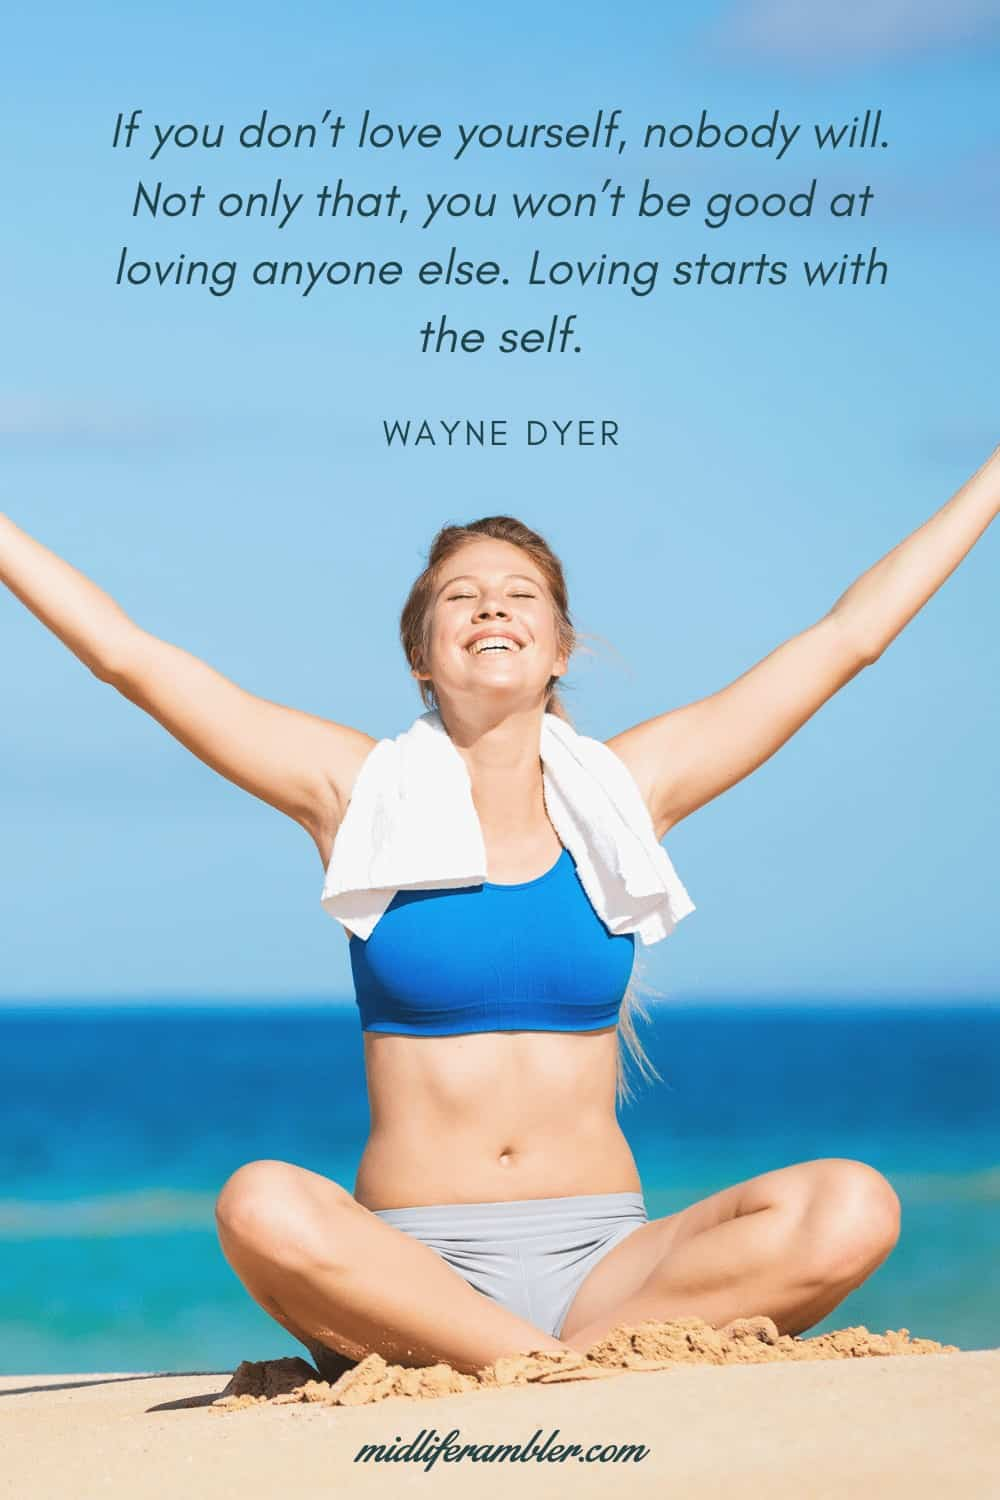 50 Self-Compassion Quotes and Affirmations to Help You Learn to Love and Accept Yourself -  If you don't love yourself, nobody will. Not only that, you won't be good at loving anyone else. Loving starts with the self. – Wayne Dyer